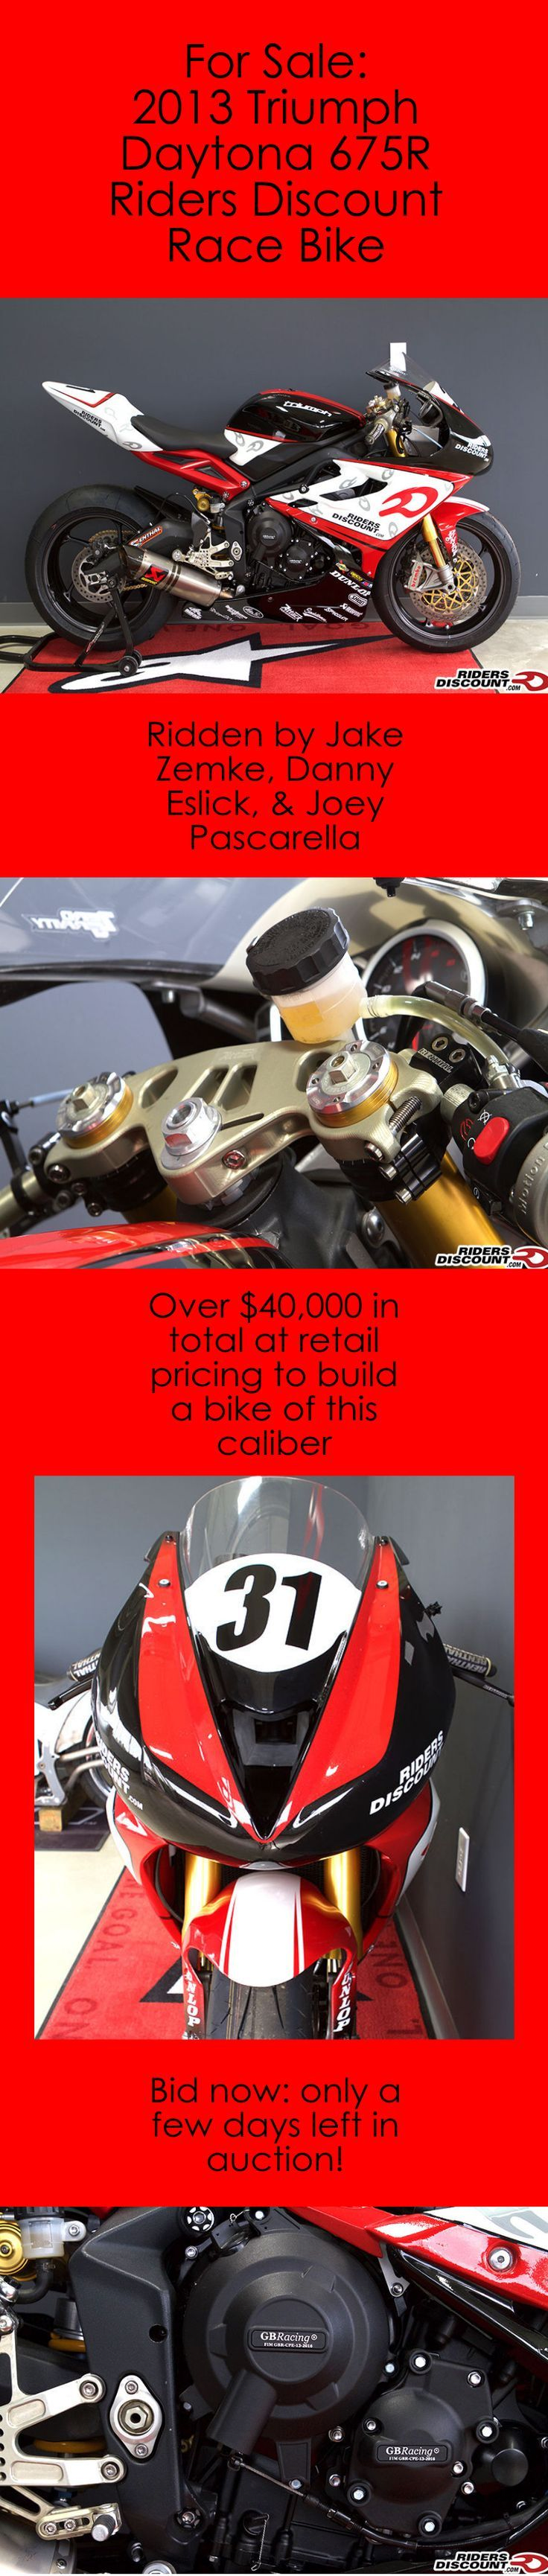 Here's your chance to have a fully developed top national motorcycle developed by some of the top riders in the US with a no reserve auction. This 2013 Triumph Daytona 675R Riders Discount race bike has been ridden by Zemke, Eslick, Pascarella, & possibly YOU! Click the image for more details.